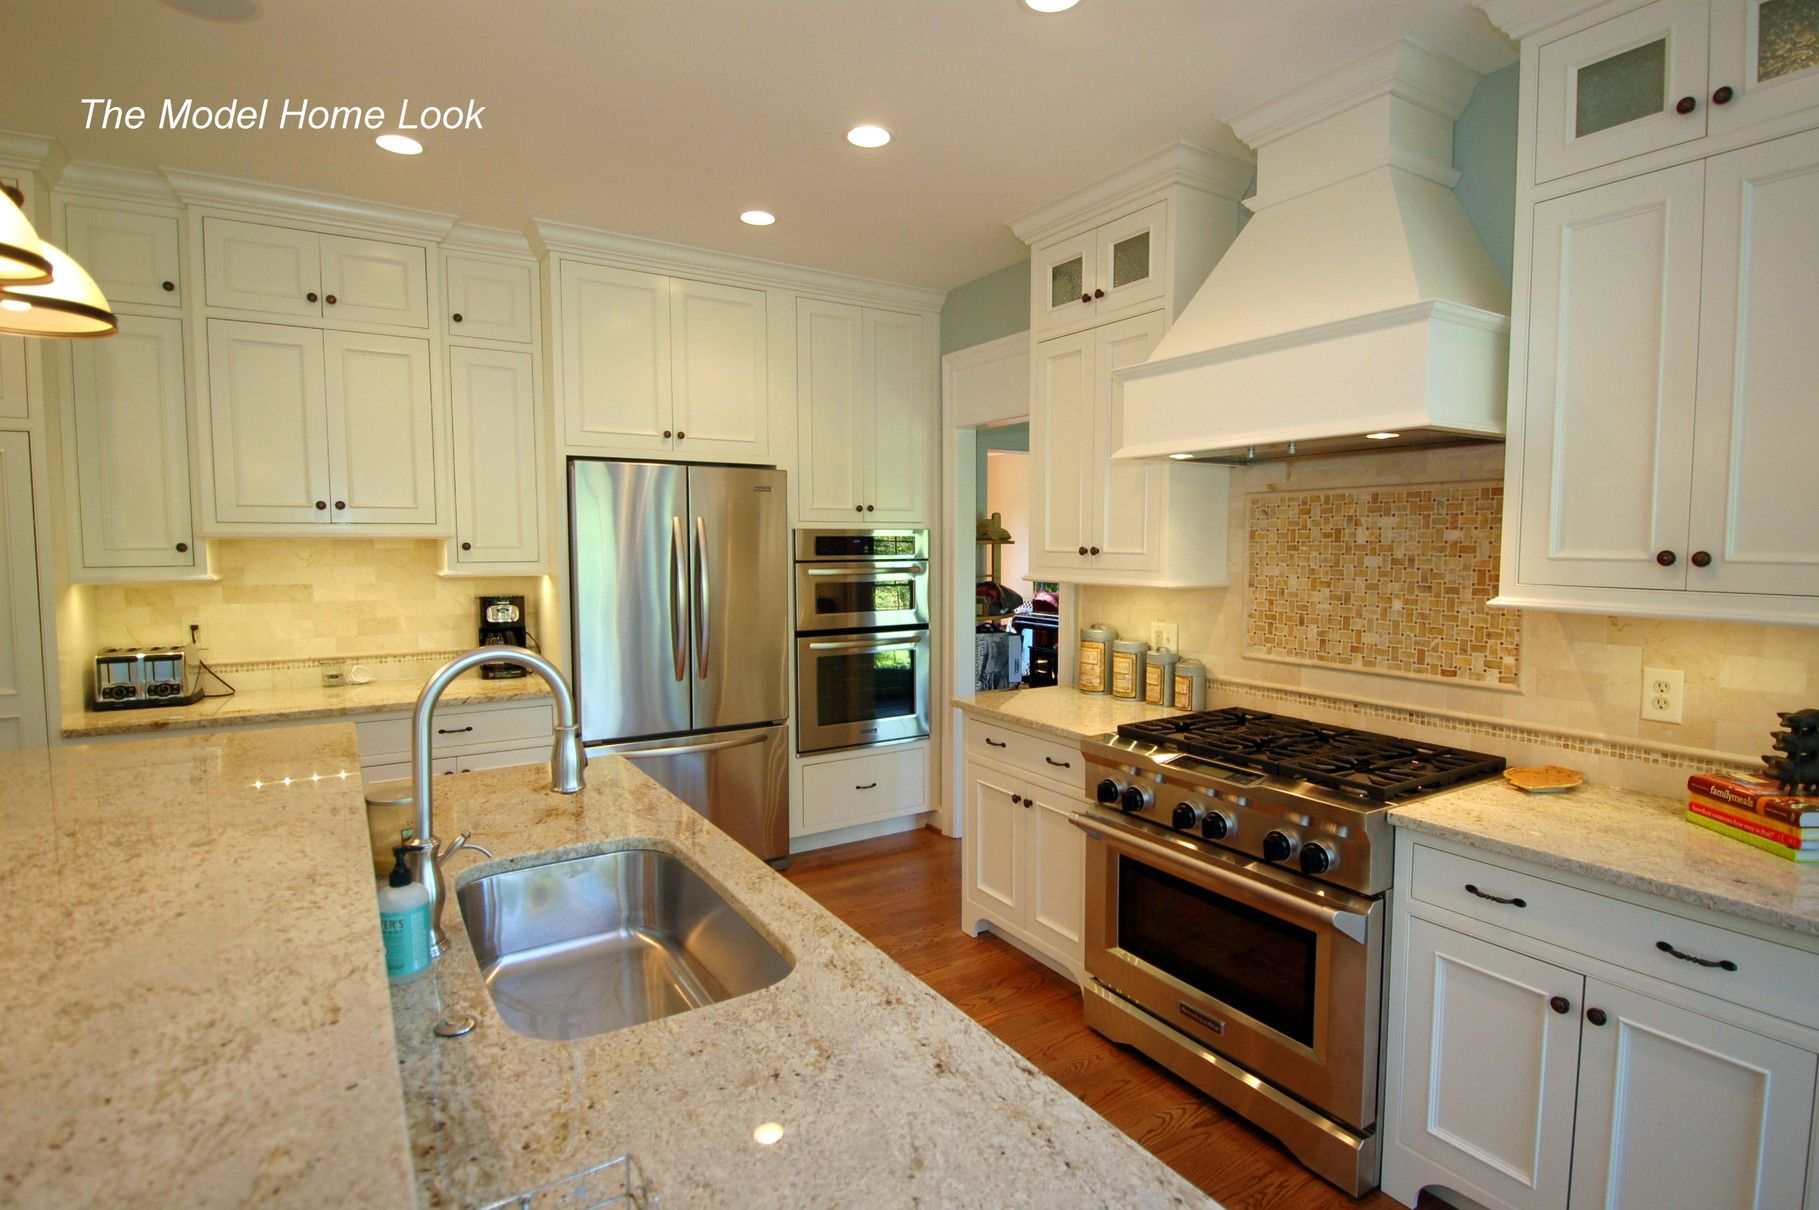 granite counter top, hardwood floors, painted cabinets with beaded